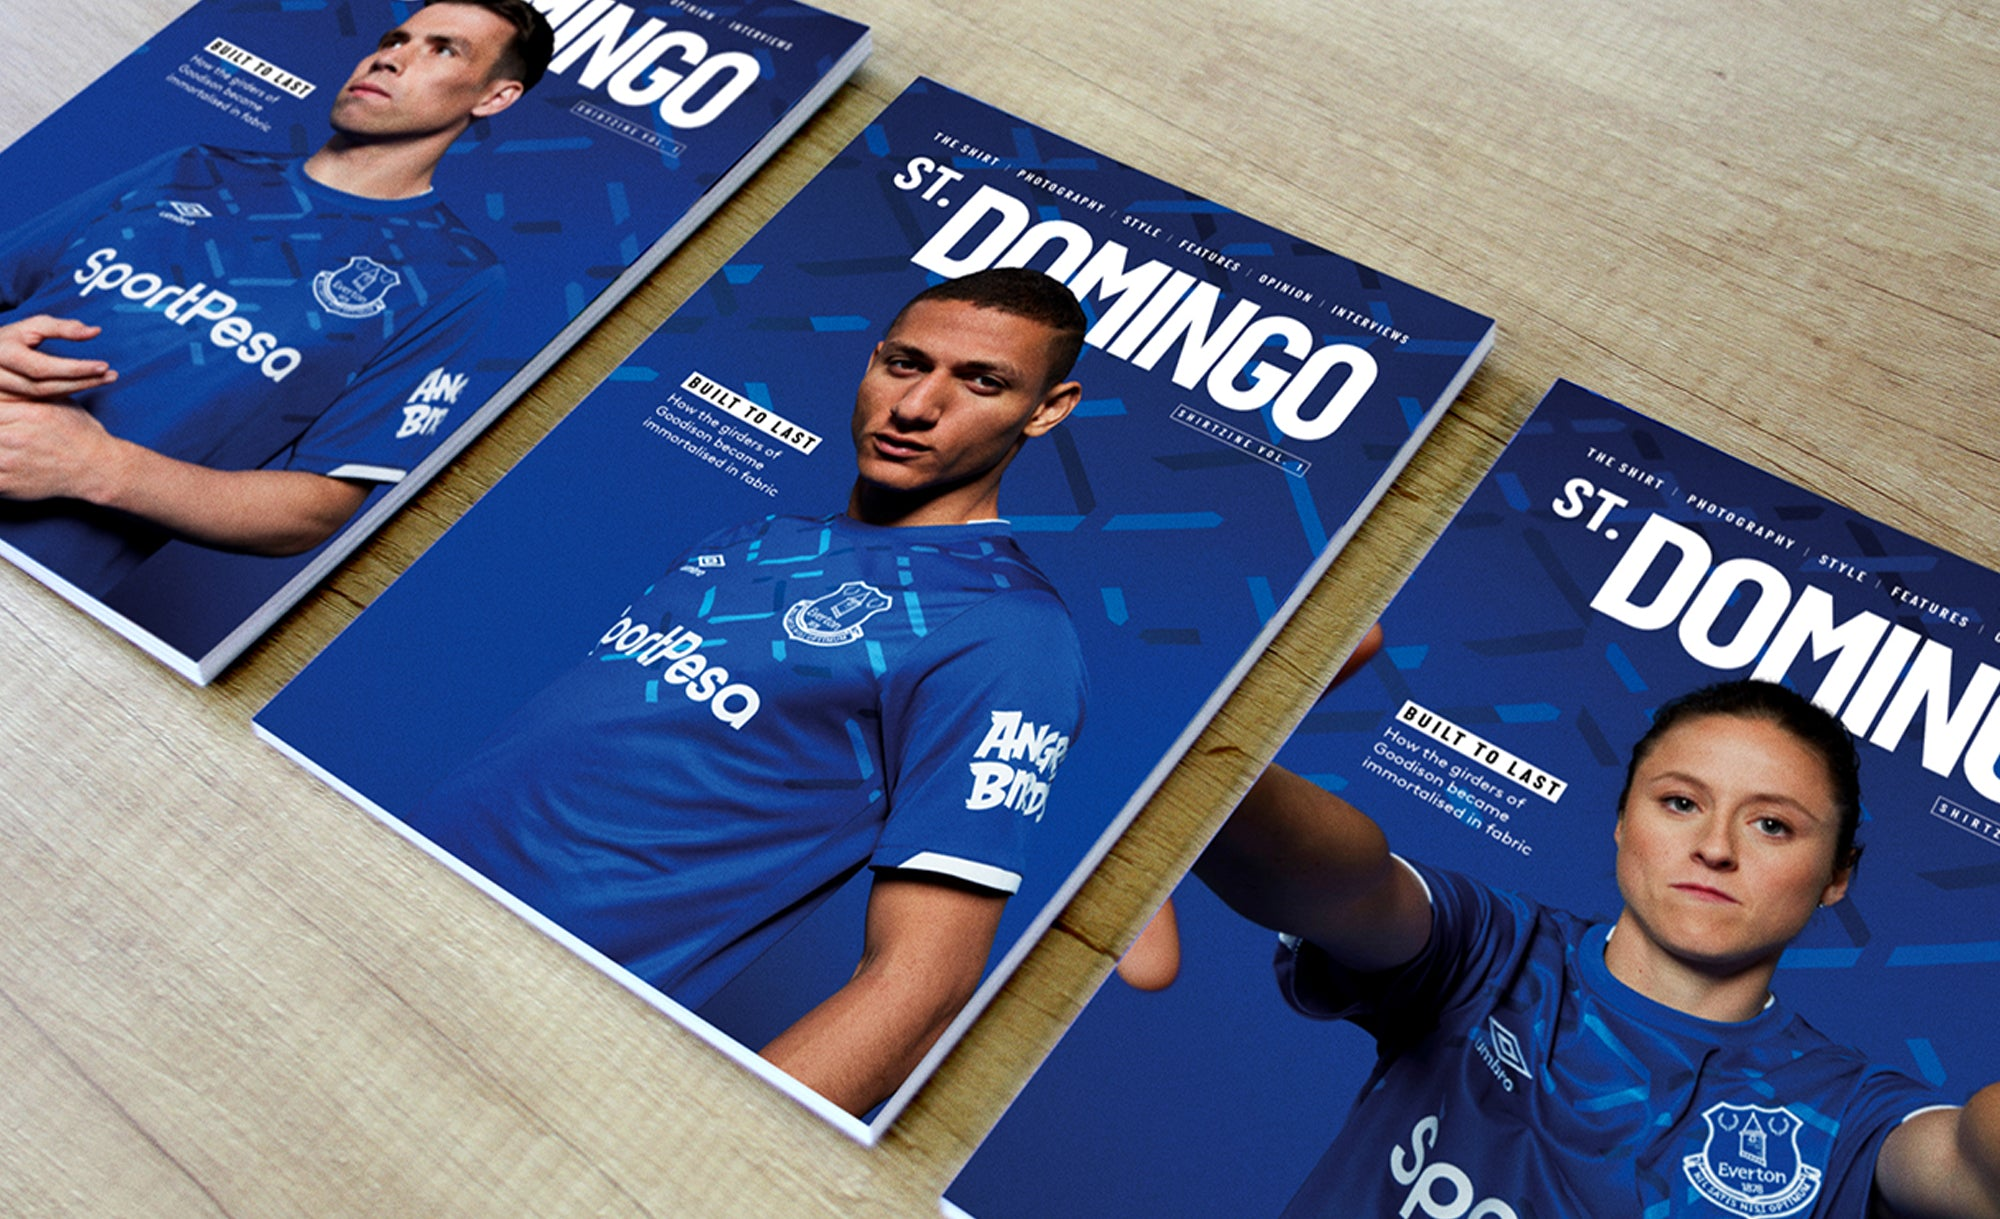 EVERTON: 'ST. DOMINGO' SHIRTZINES